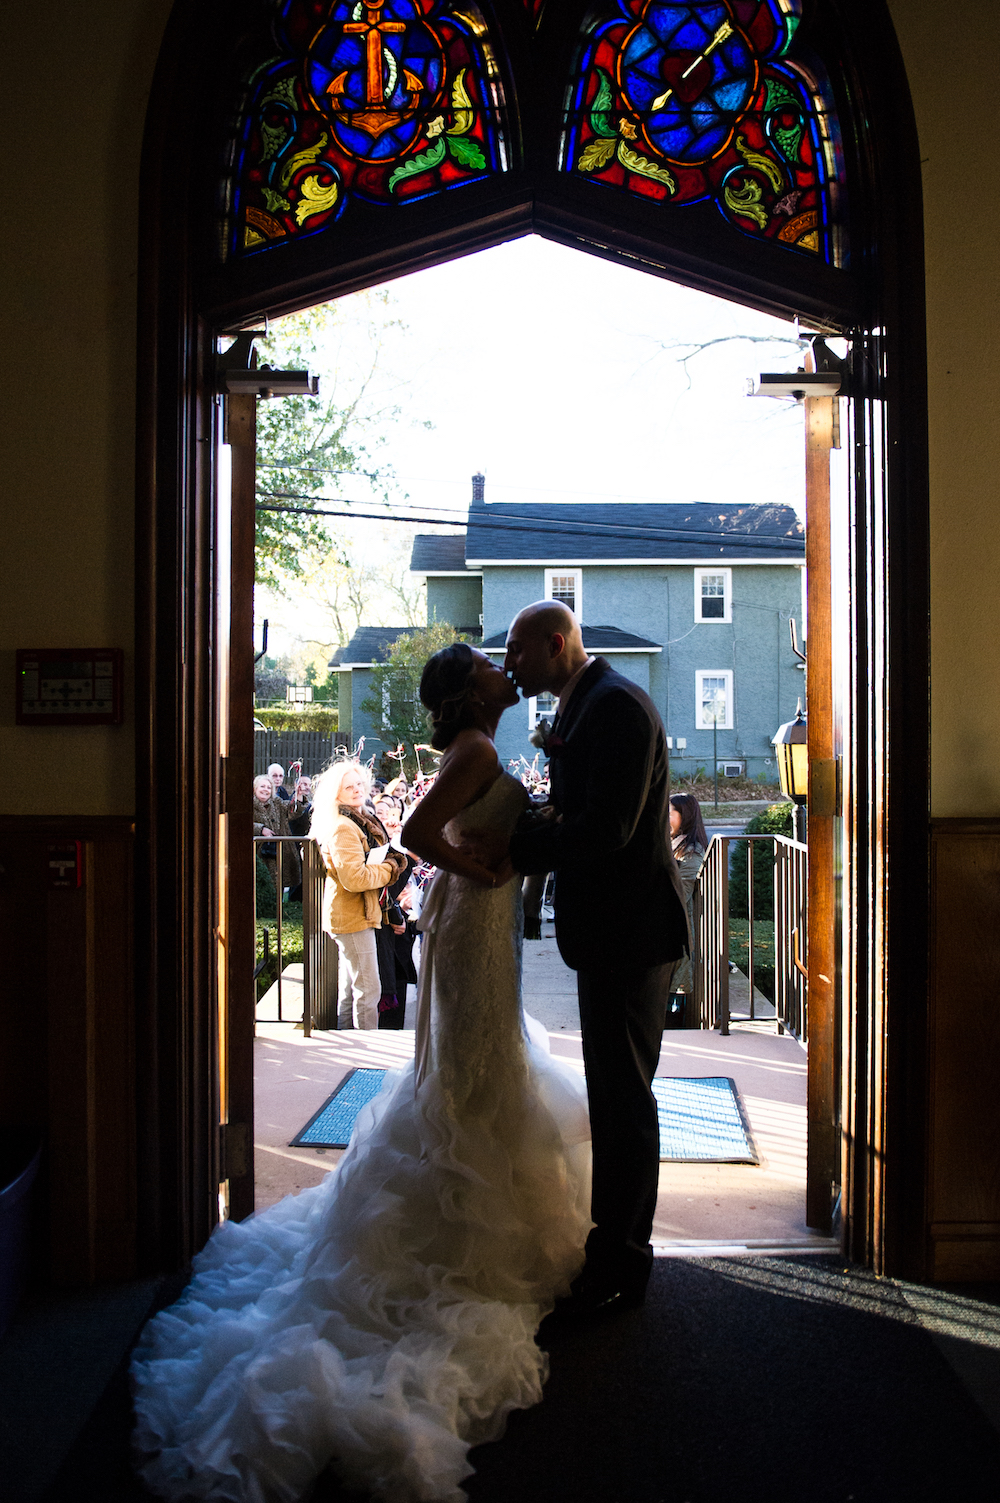 leah&frank-kissing-in-church-doorway-after-ceremony-wedding-photography-nj